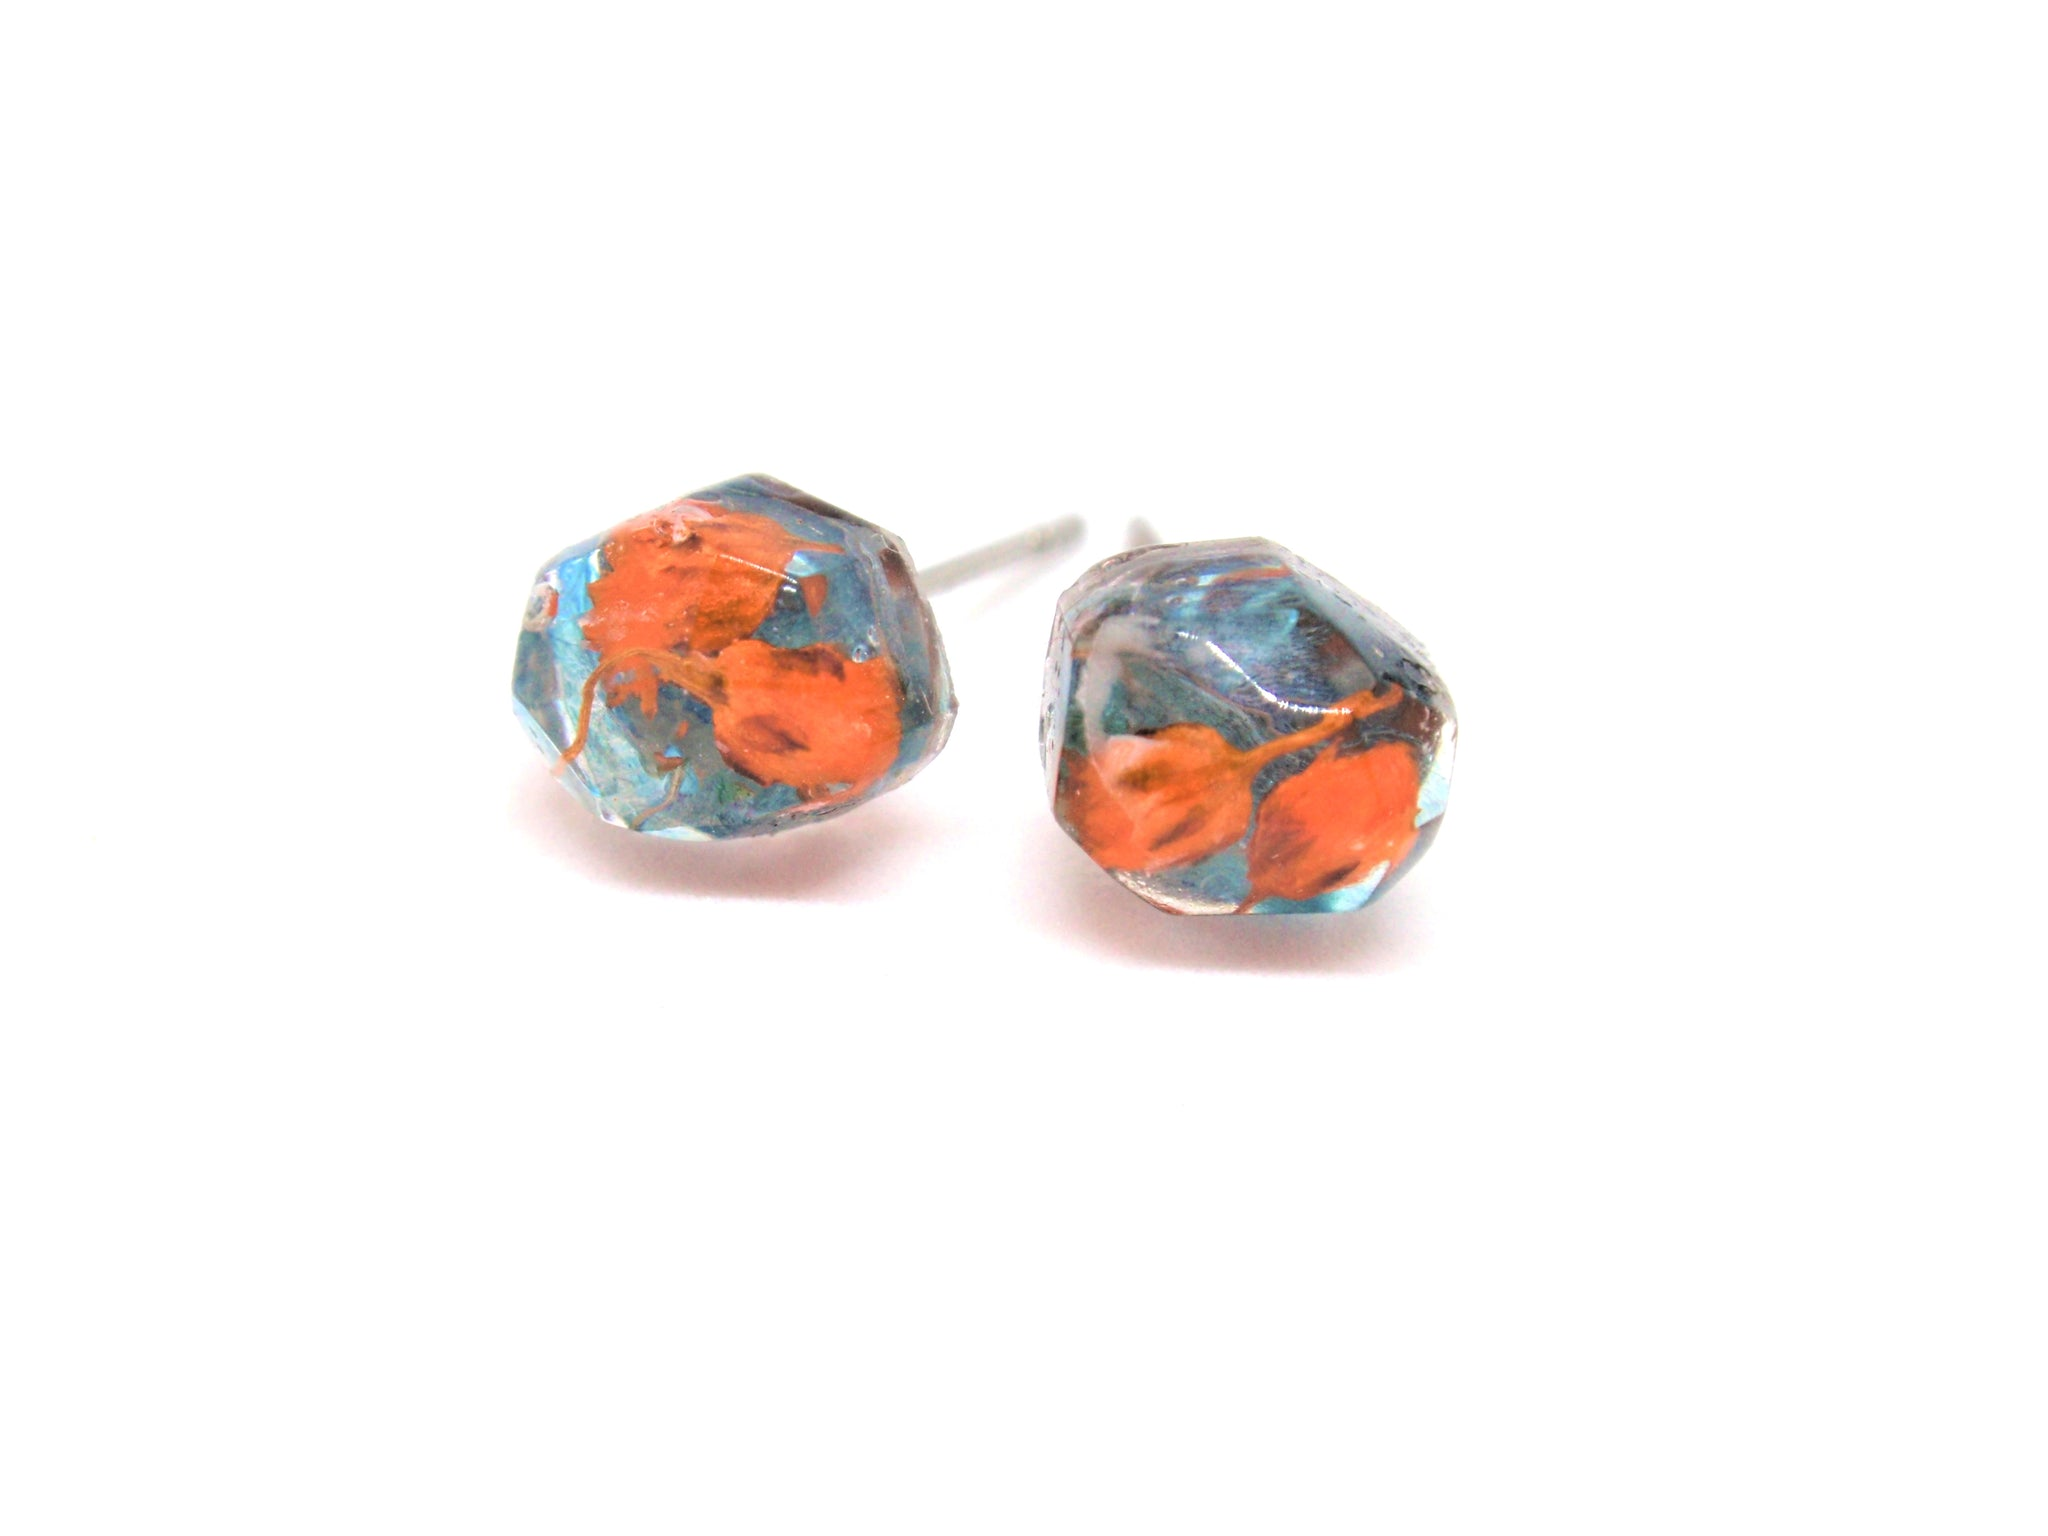 Handmade flower stud earrings, Post resin earring